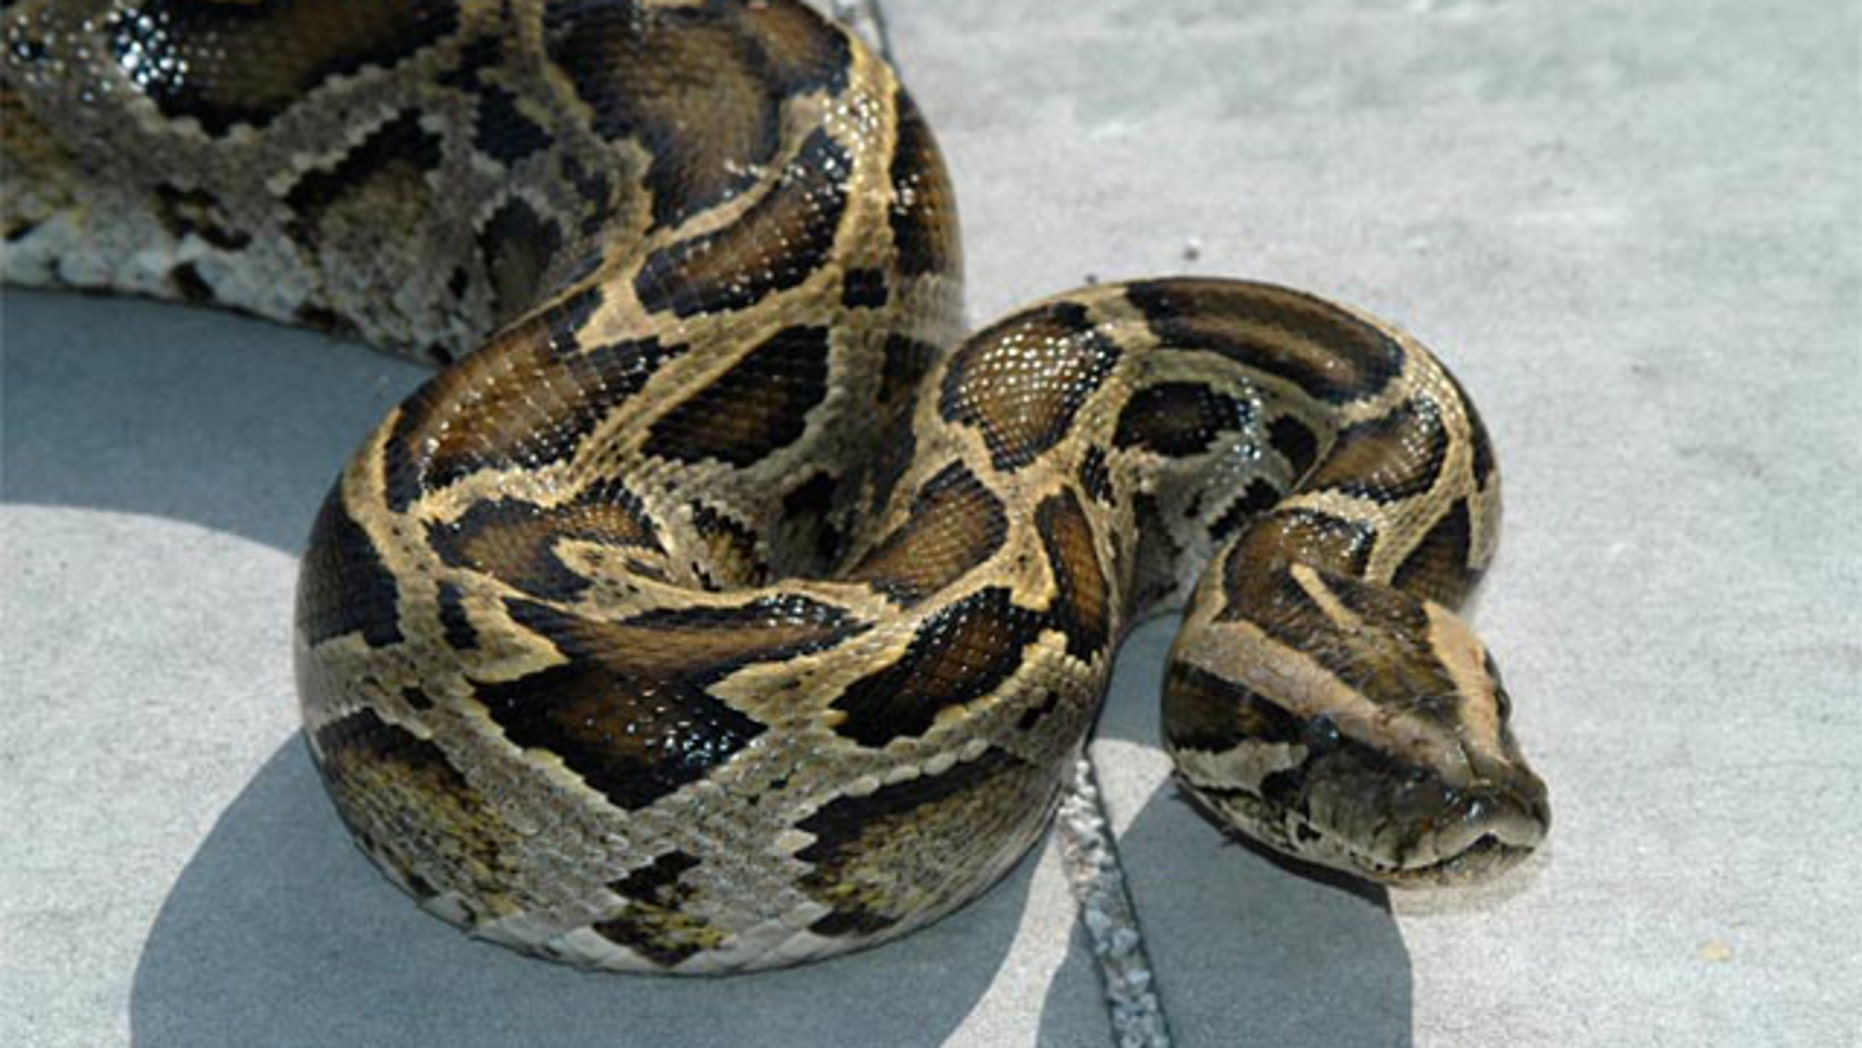 Burmese pythons, one of the largest snake species on Earth, are breeding in the Everglades National Park and spreading rapidly. Nearly 1,000 pythons have been removed from the park and surrounding areas since 2002, according to the National Park Service.